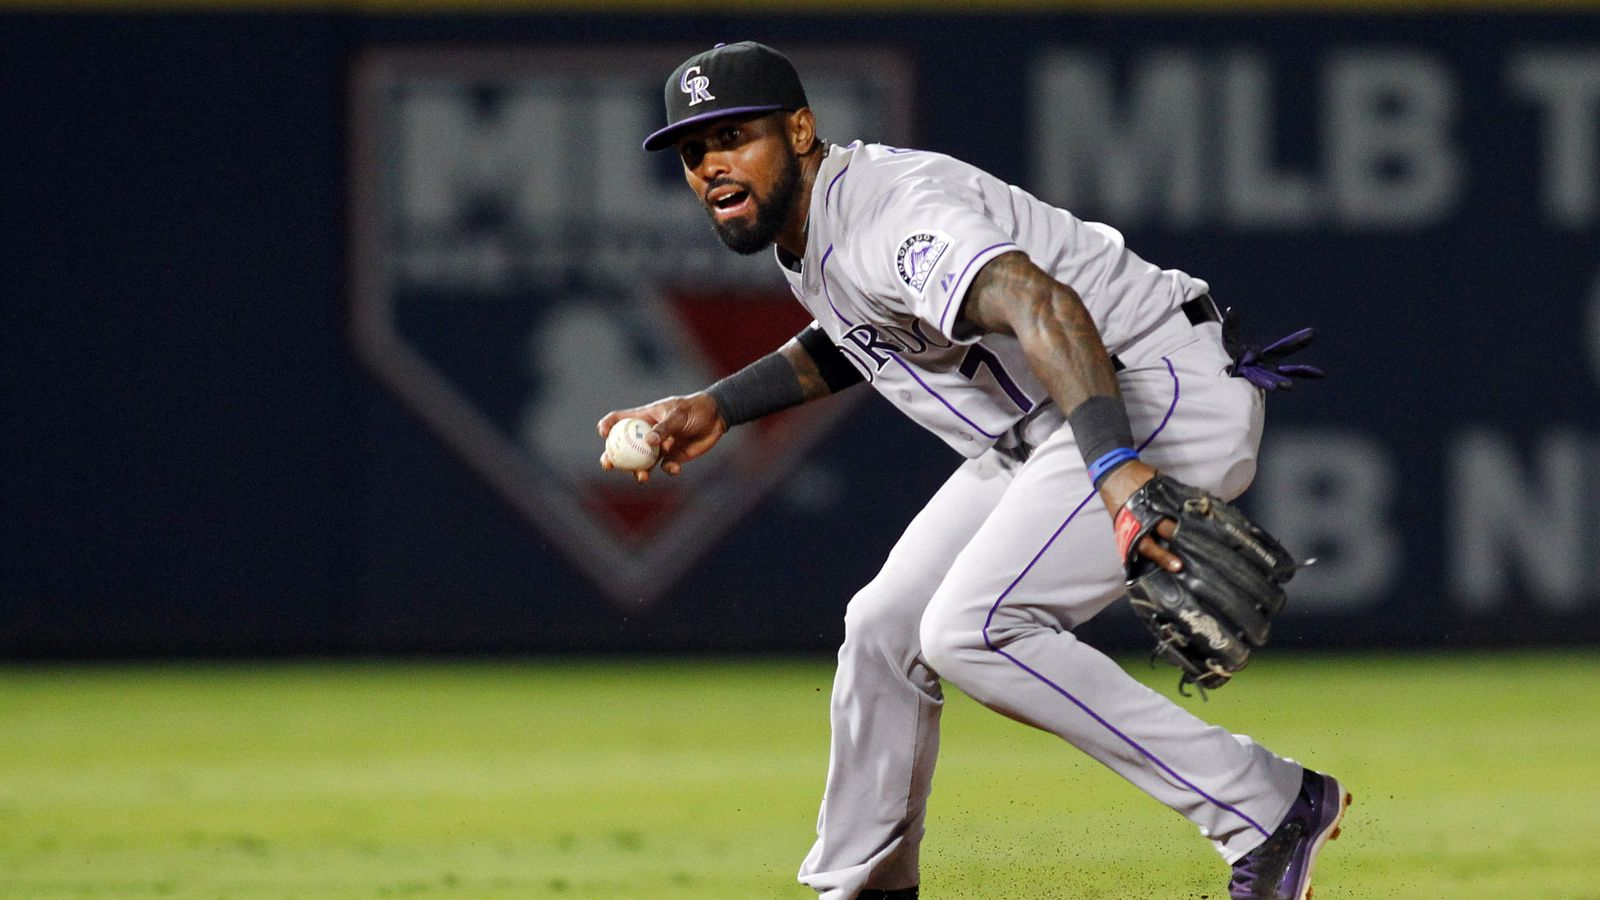 The Mets end an eventful week by signing Jose Reyes